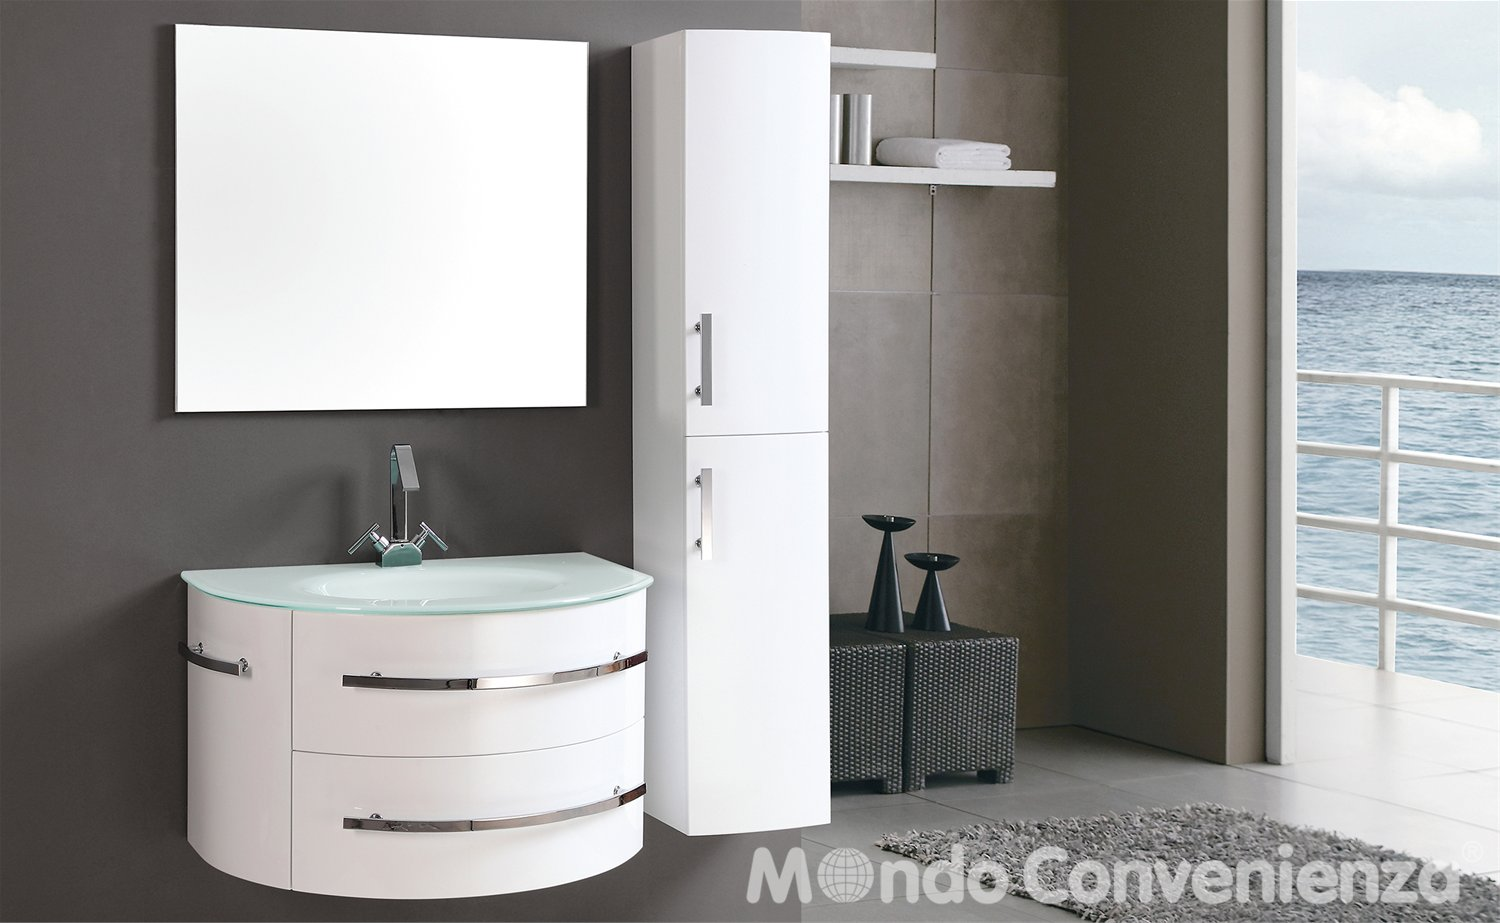 Catalogo mondo convenienza 2013 18 design mon amour for Arredo bagno mondo convenienza